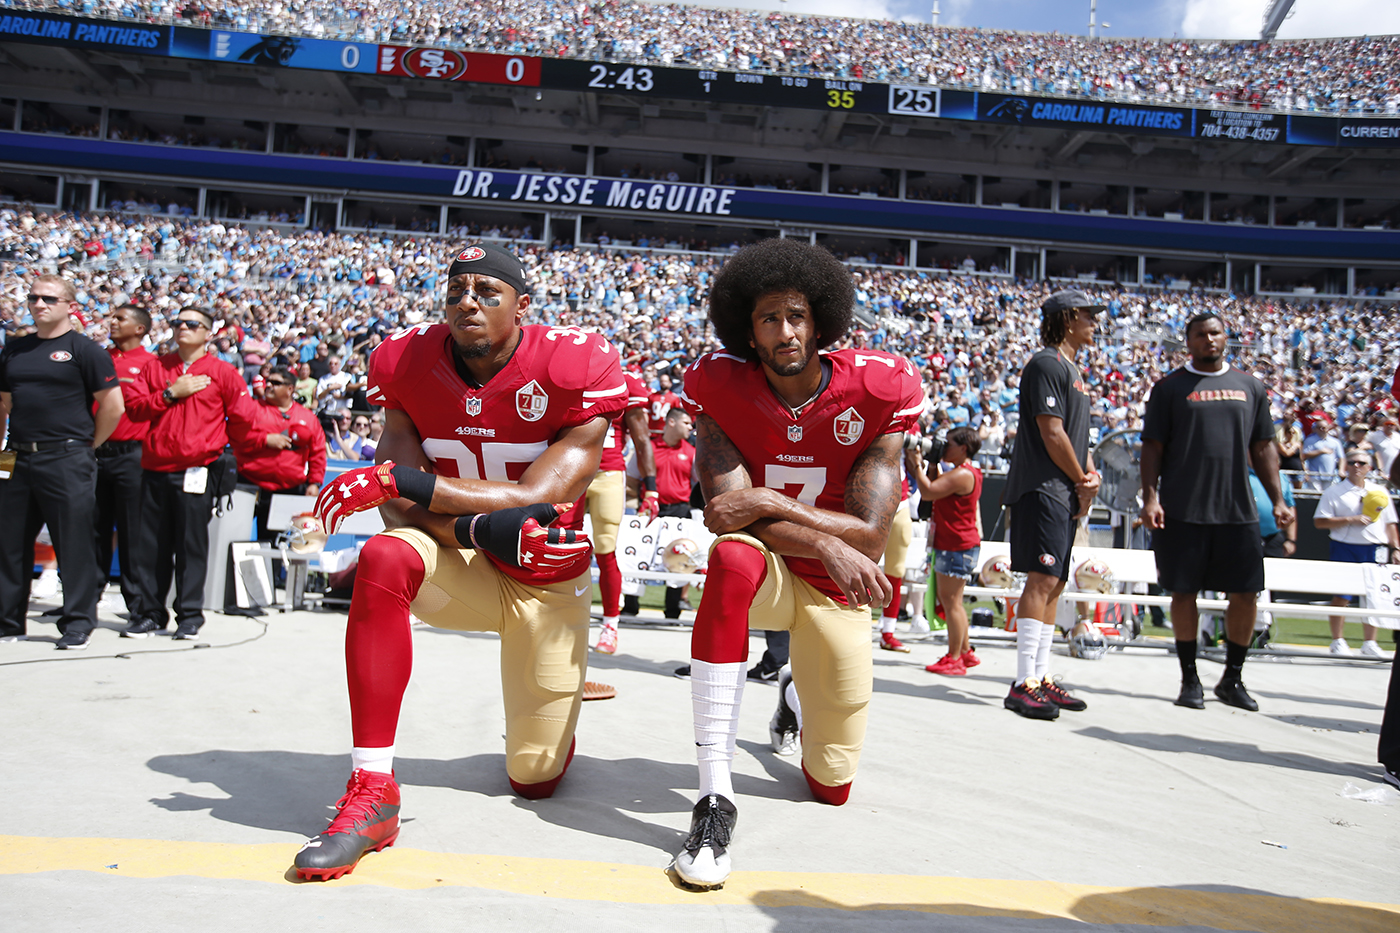 Colin Kaepernick (right) and Eric Reid of the San Francisco 49ers kneel while the national anthem plays before the game against the Carolina Panthers, in September